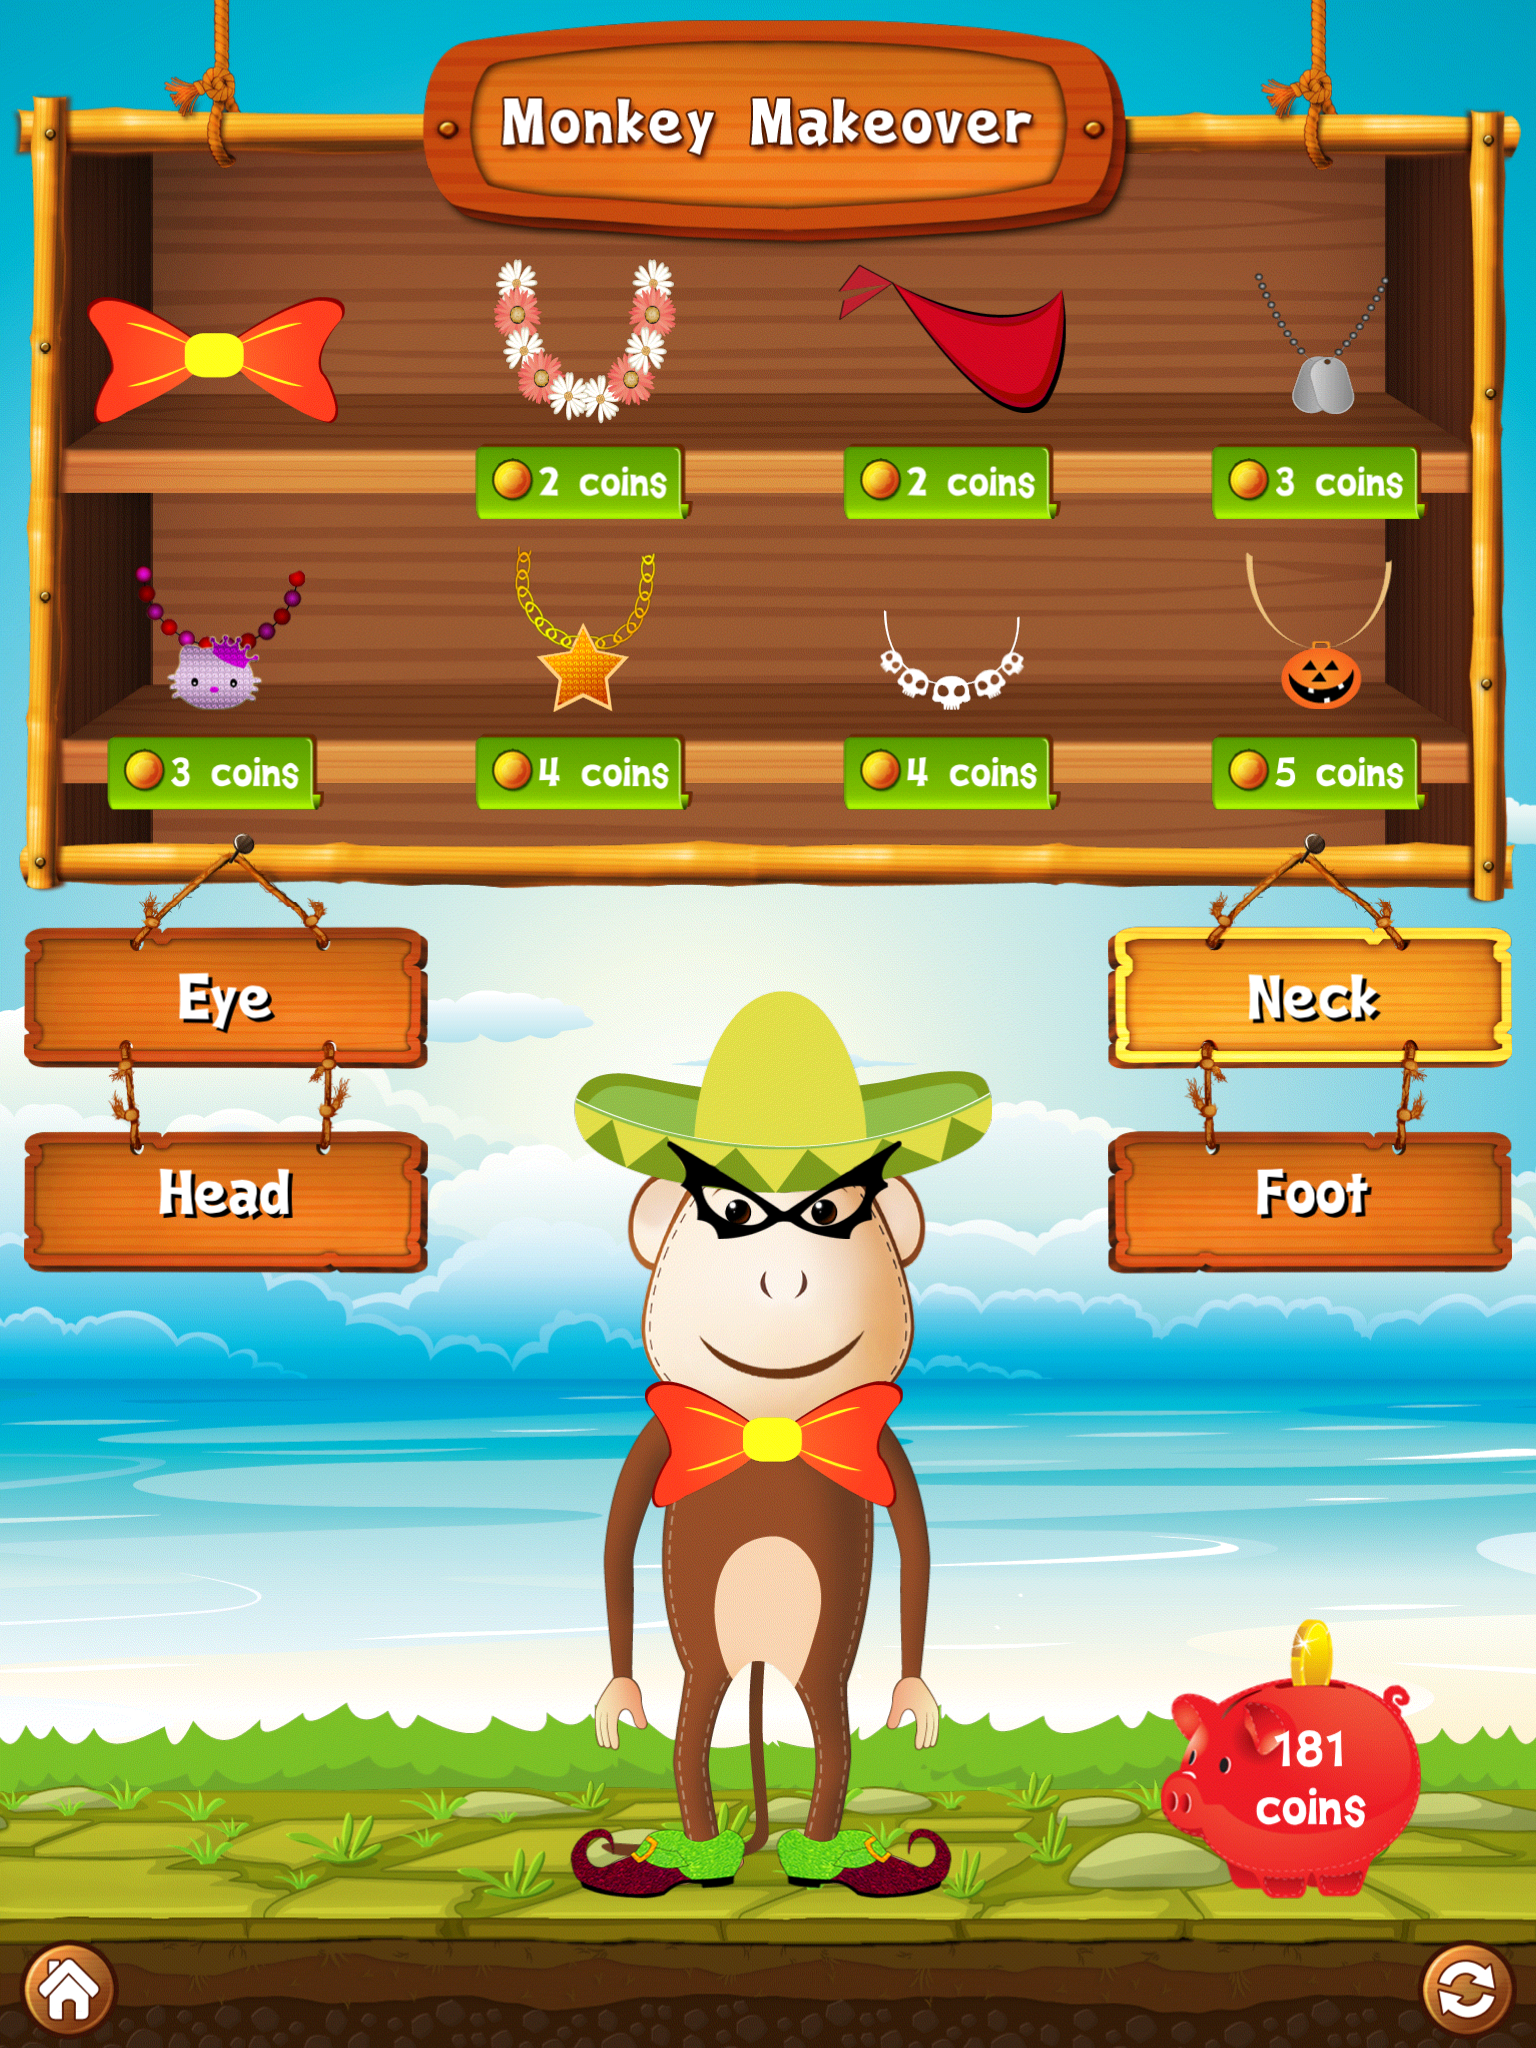 Splash Money Interactively Teaches The Concept Of Money The App Will Promote Self Learning And Using This Fun Math Learning Games For Kids Fun Learning Games [ 2048 x 1536 Pixel ]